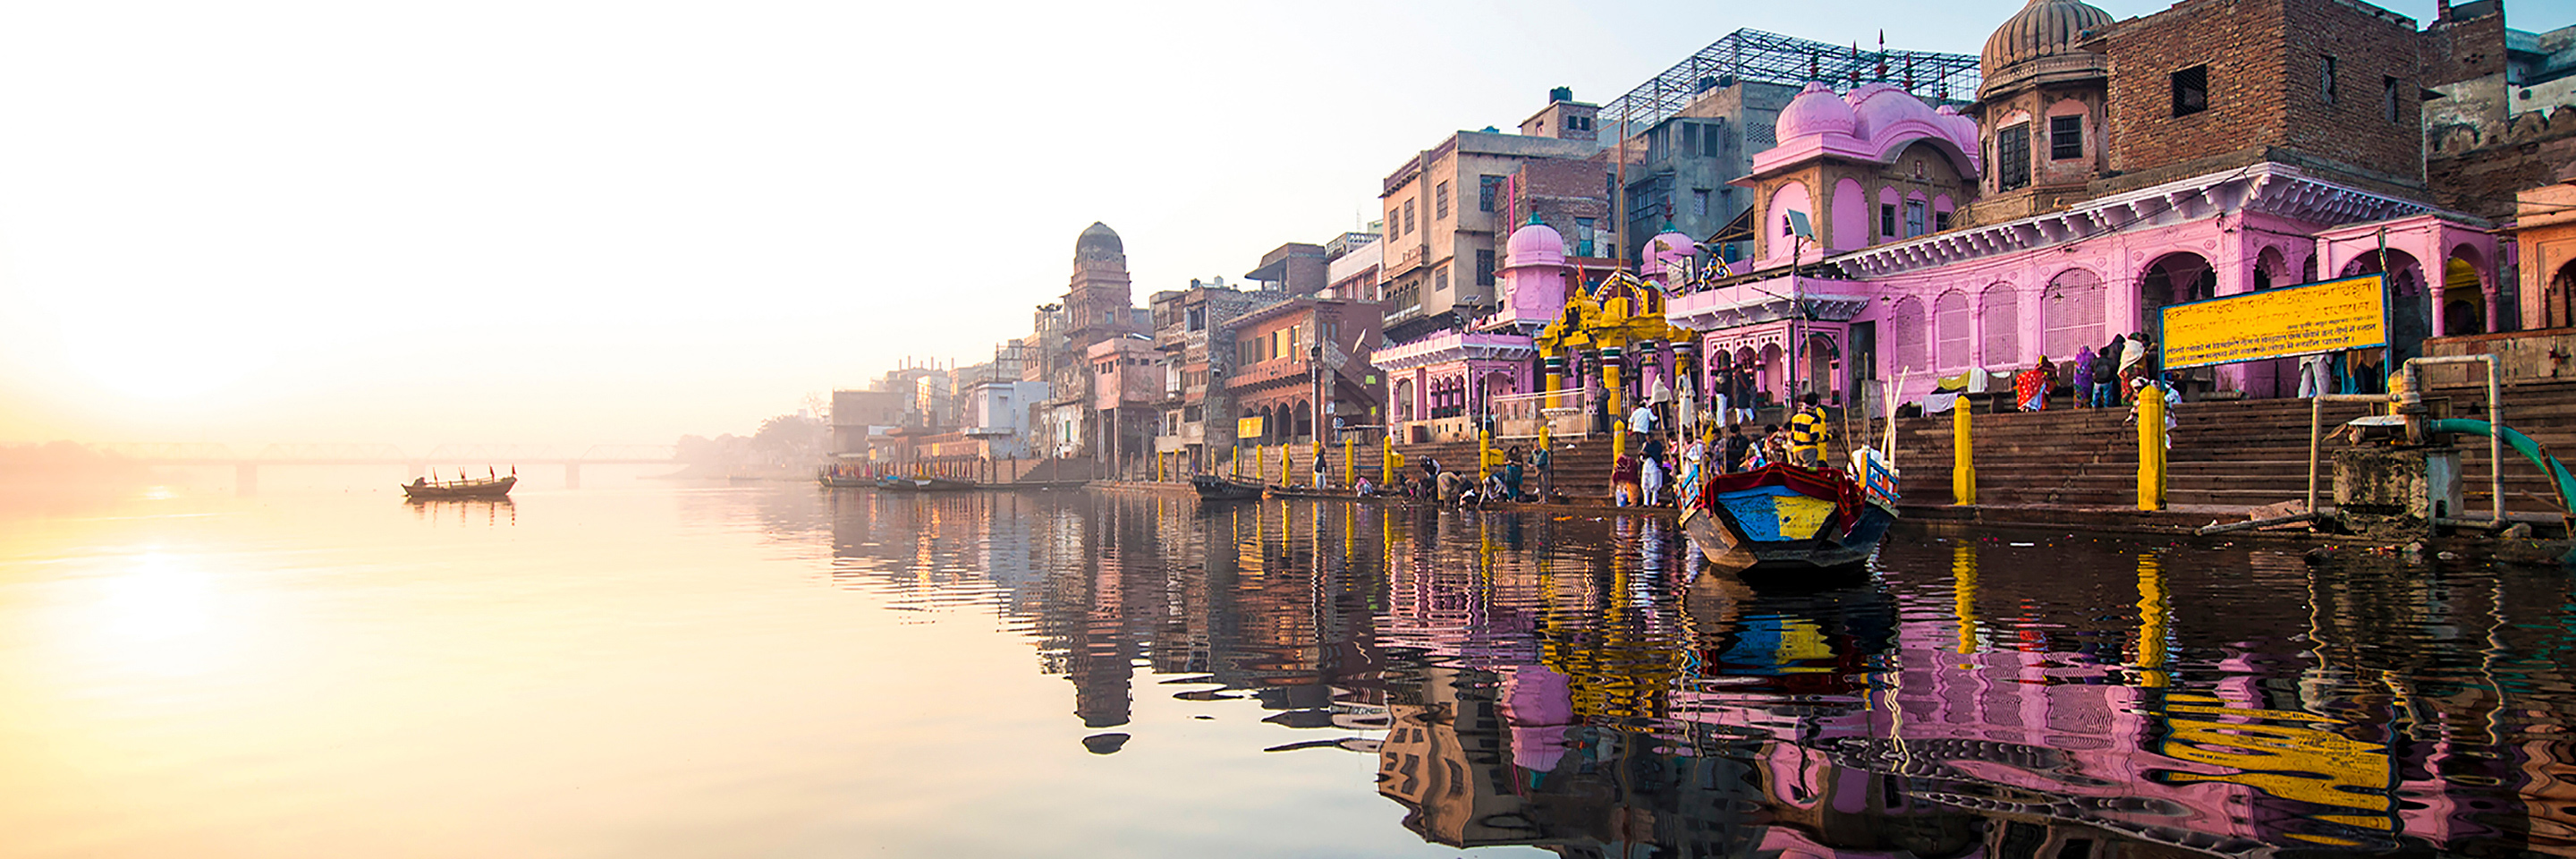 Colorful India & the   Ganges River with Southern India & Varanasi